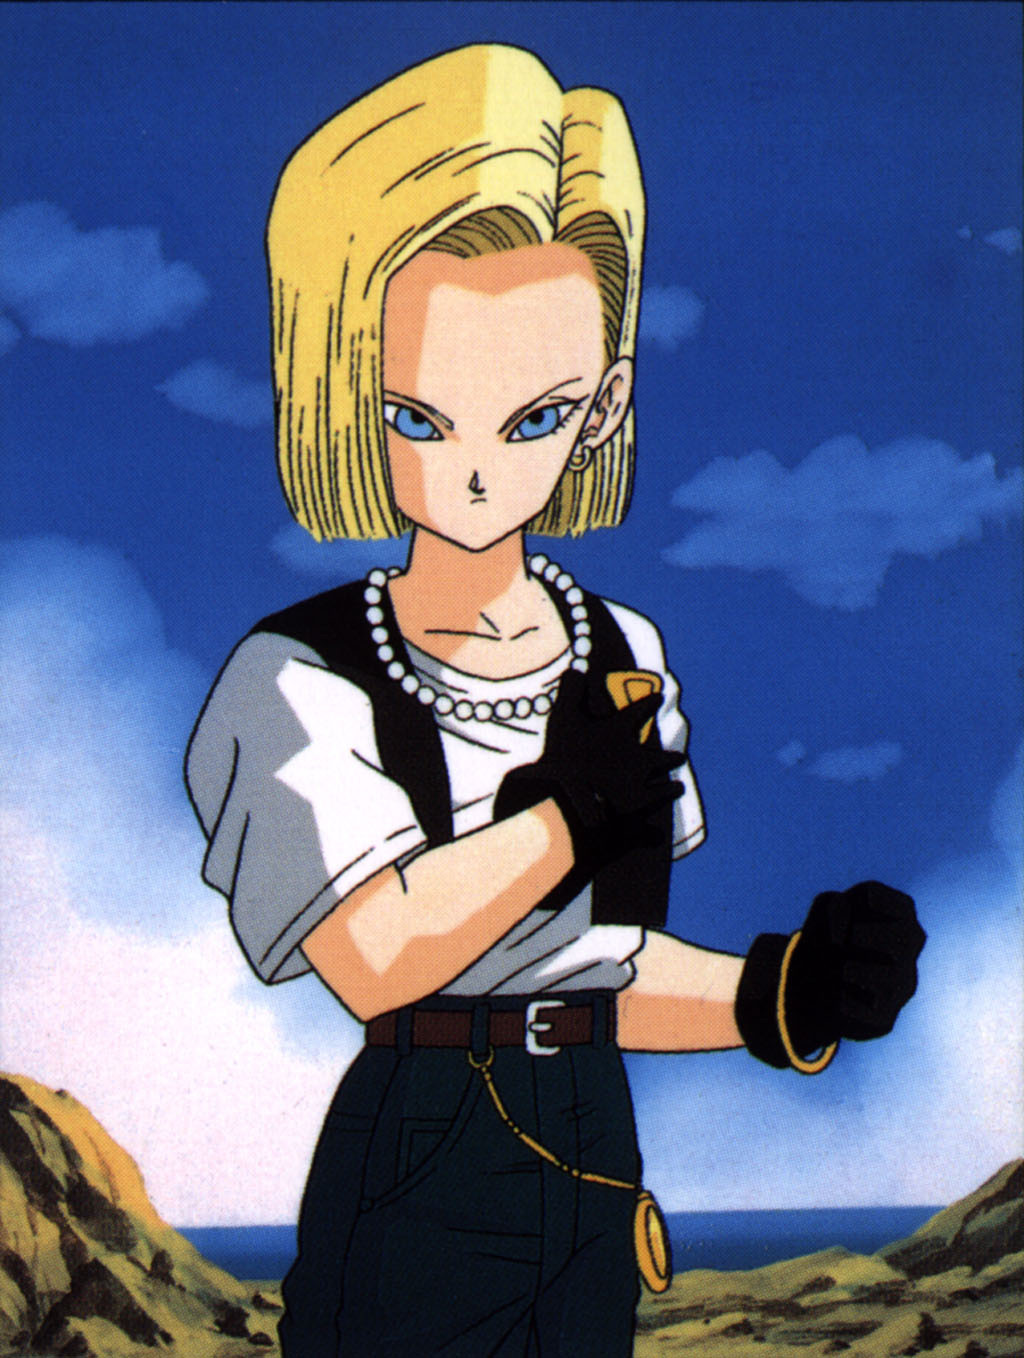 Android 18 images c 18 hd wallpaper and background photos - Dragon ball c18 ...